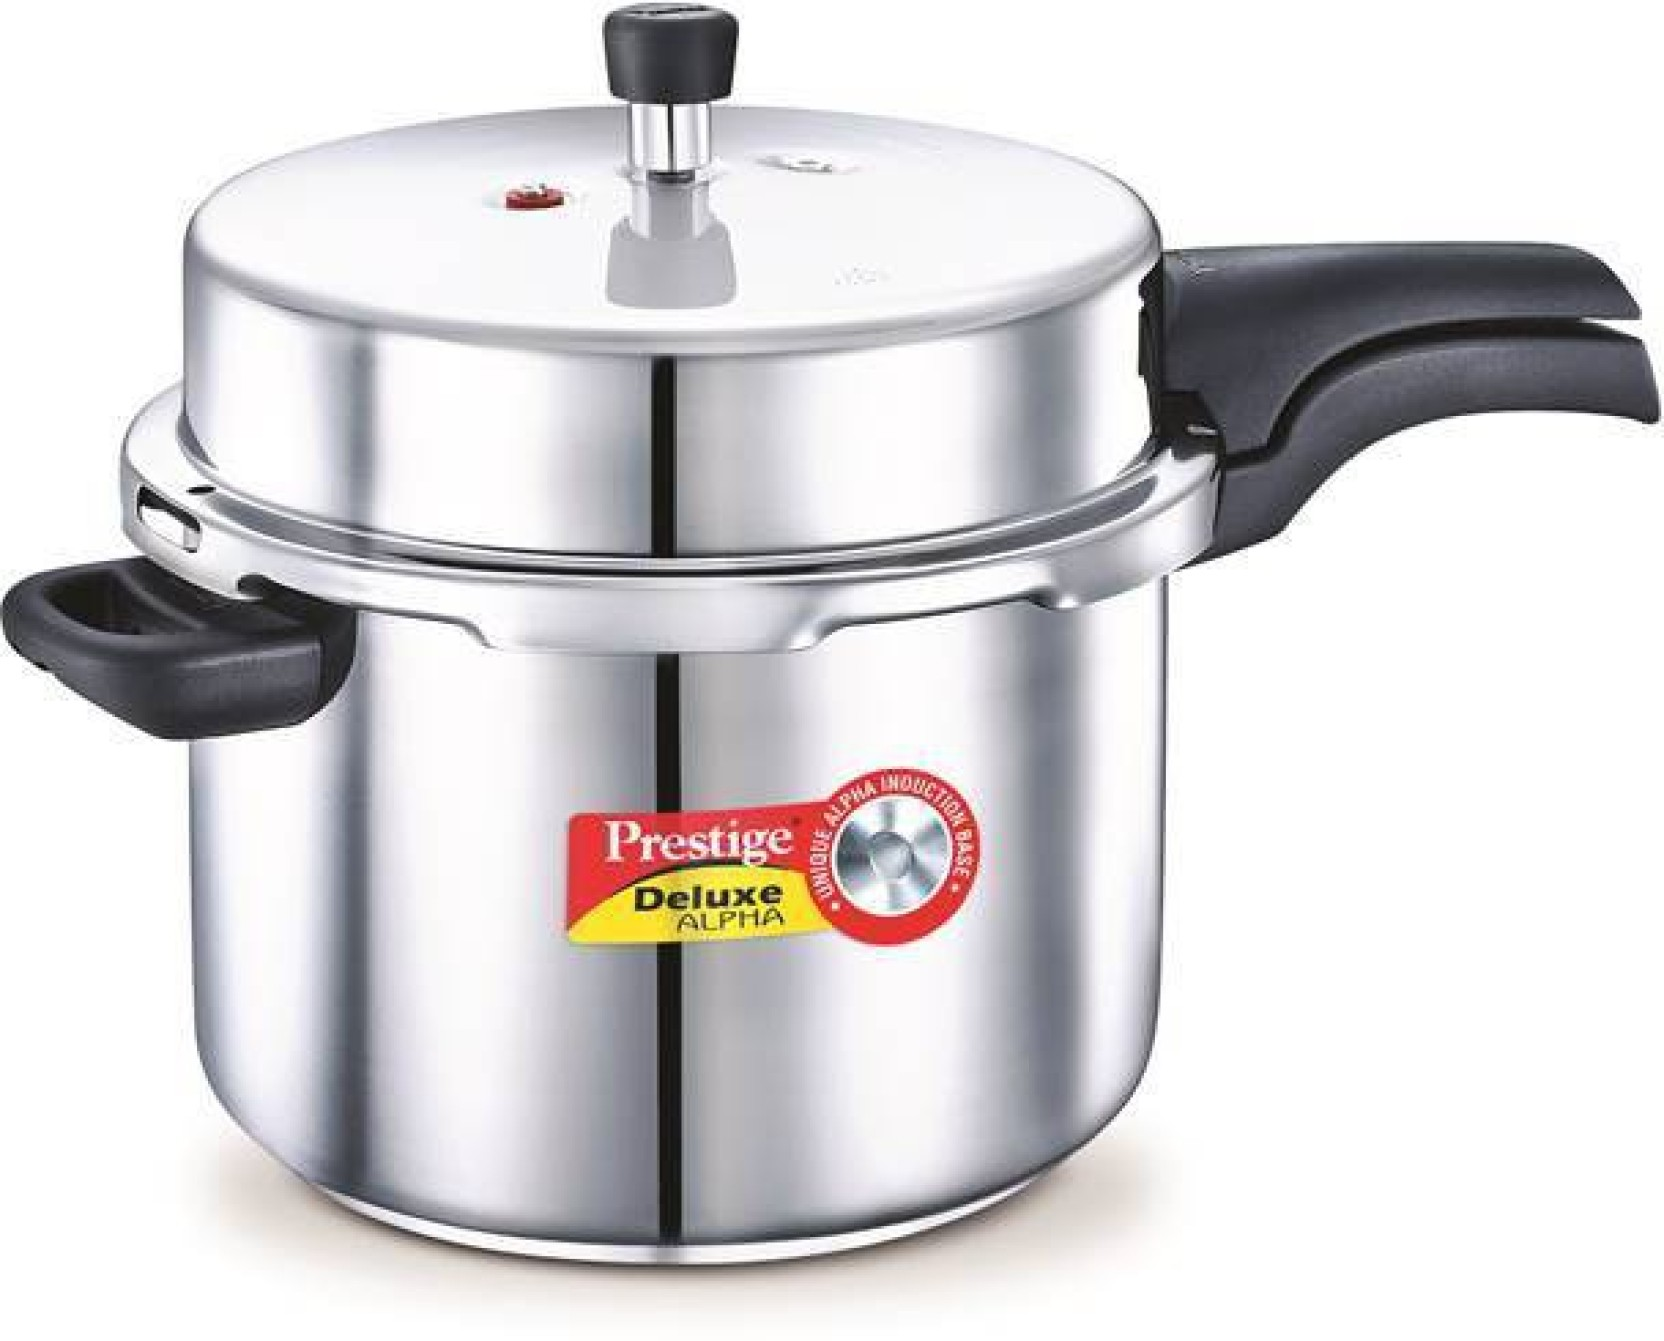 Prestige Deluxe Alpha 8 L Pressure Cooker With Induction Bottom Buy Circuit Boardelectric Cookerinduction Add To Cart Now